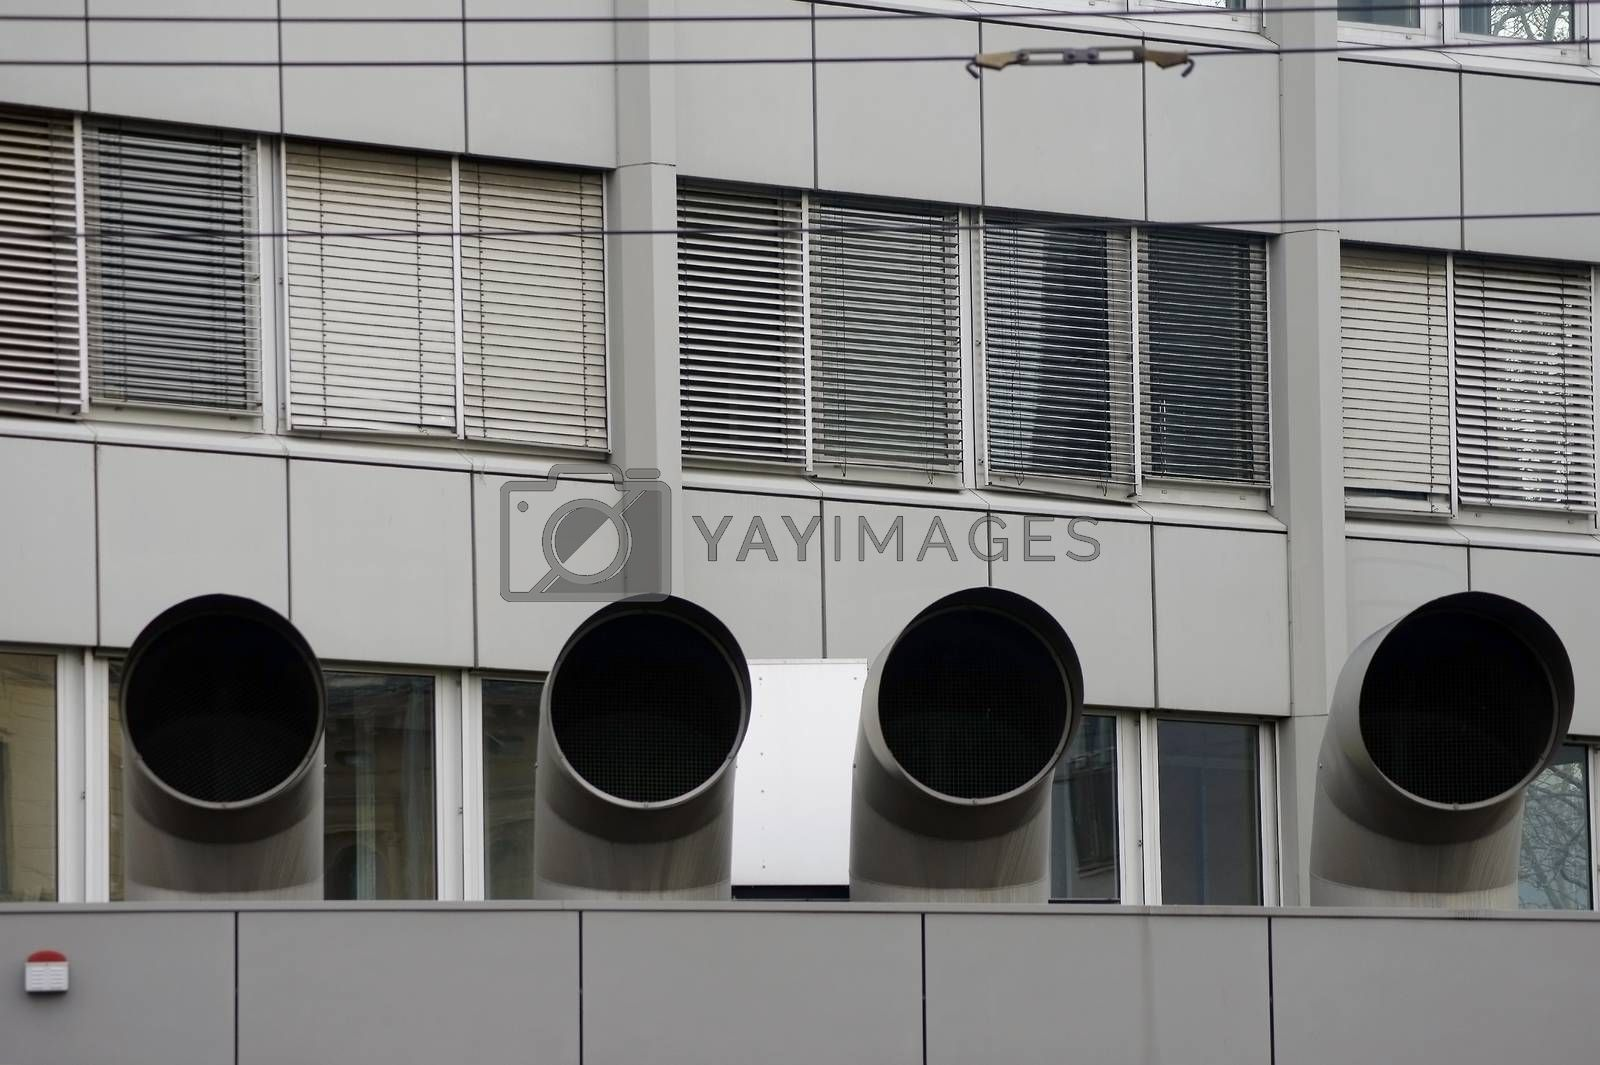 Four large ventilation pipes on a roof edge with an alarm system.